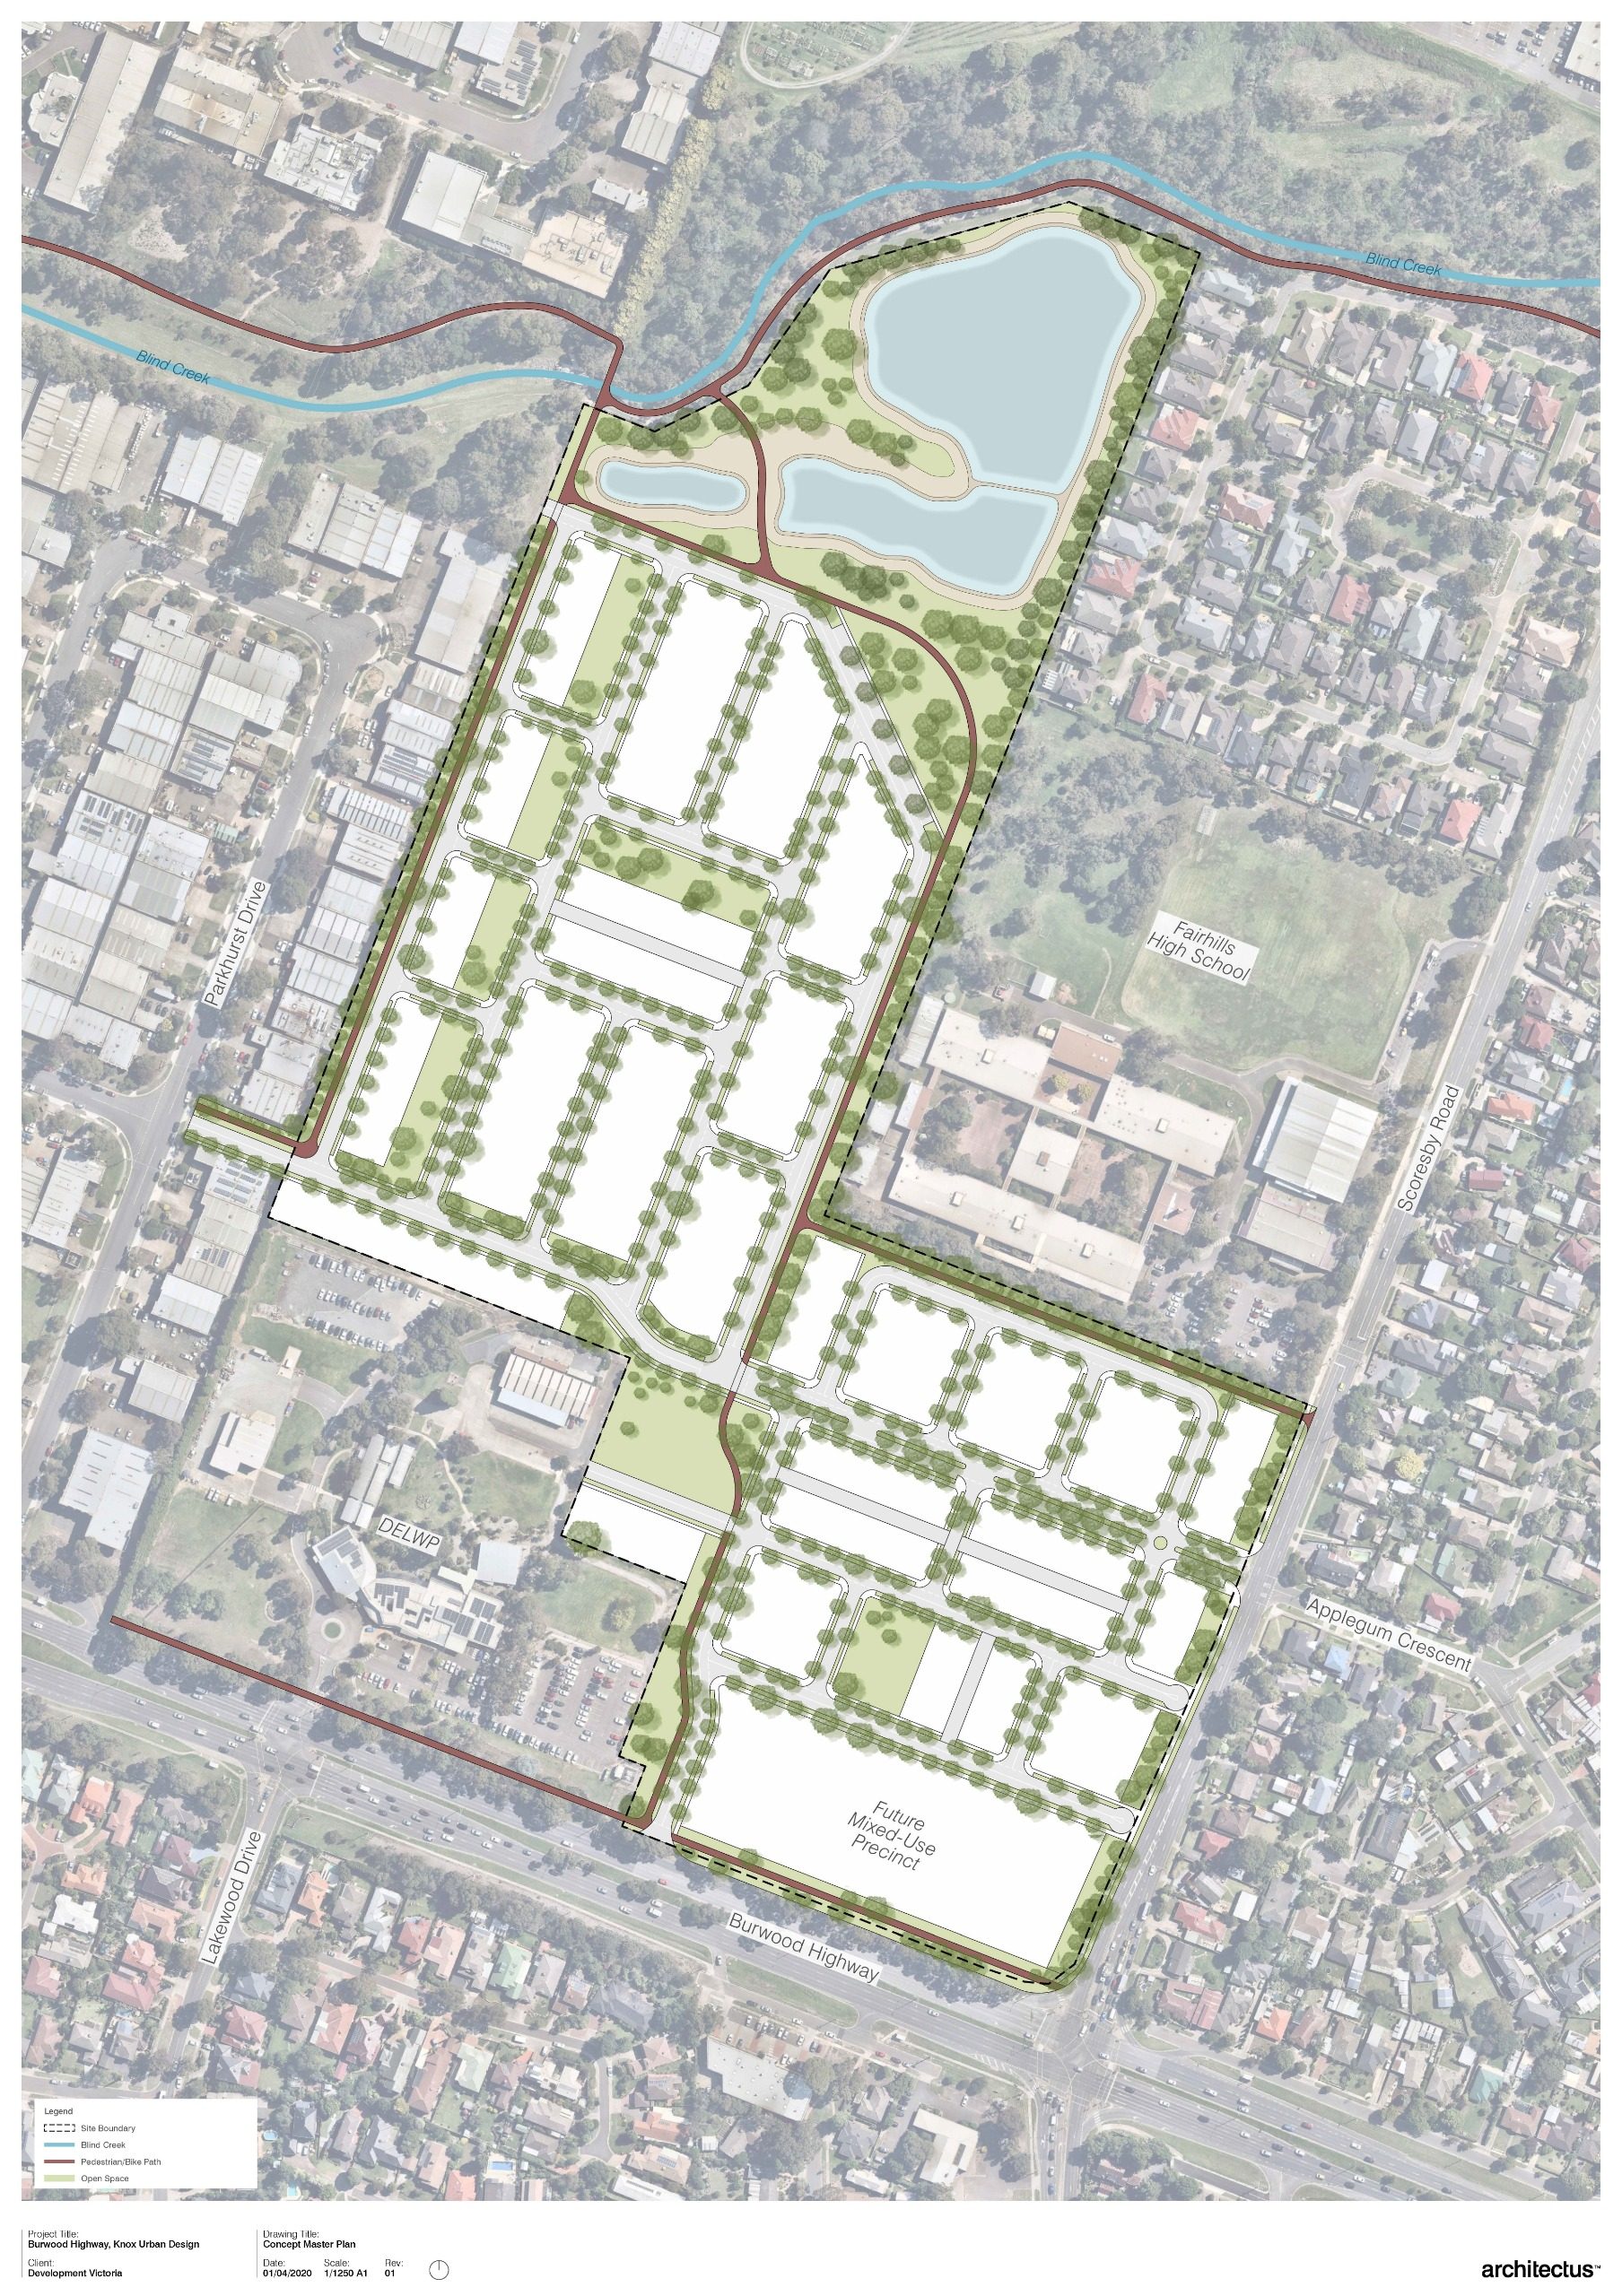 The image shows the Knoxfield draft Masterplan. The image shows The residential area with a diverse range of dwellings all of which will have off-street parking. The image also shows multiple public open space and recreational spaces, the new wetland whic